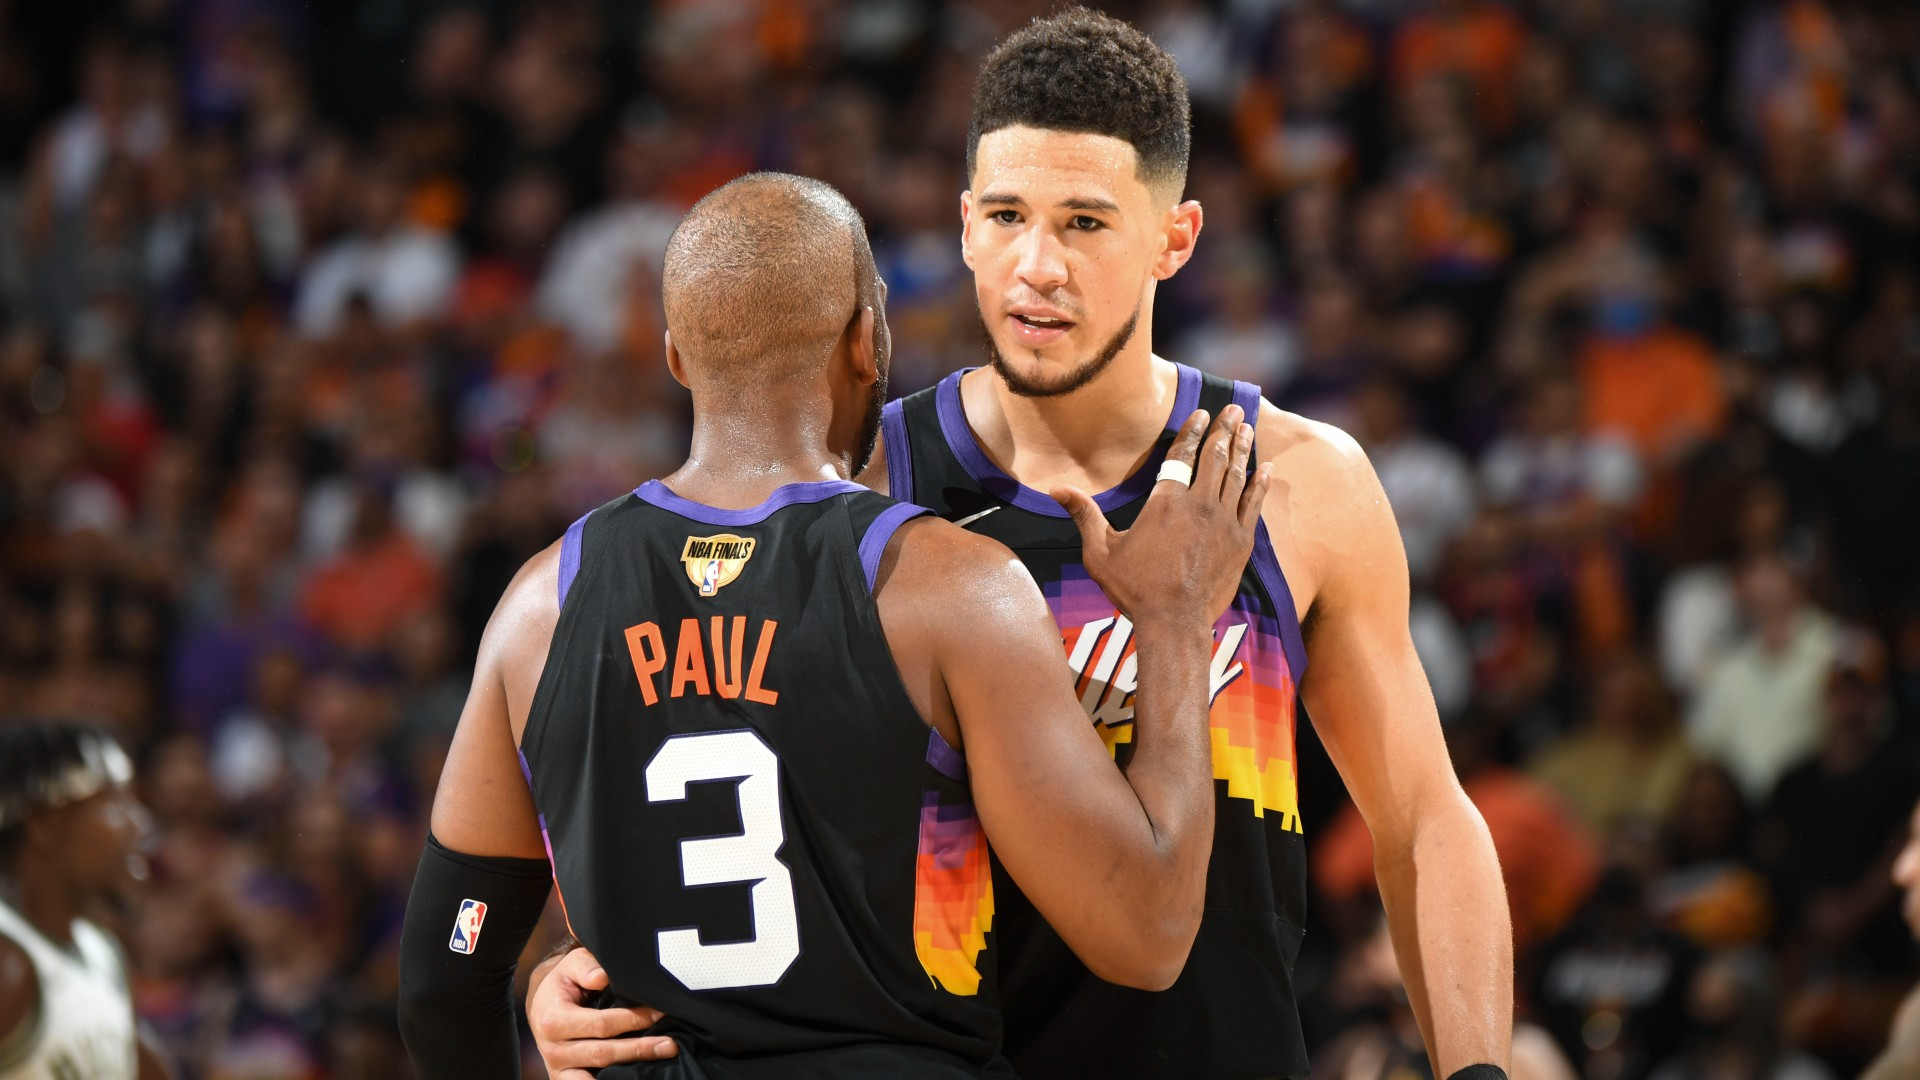 NBA Finals 2021: Phoenix Suns vs. Milwaukee Bucks - updates, scores, stats and highlights | NBA.com India | The official site of the NBA